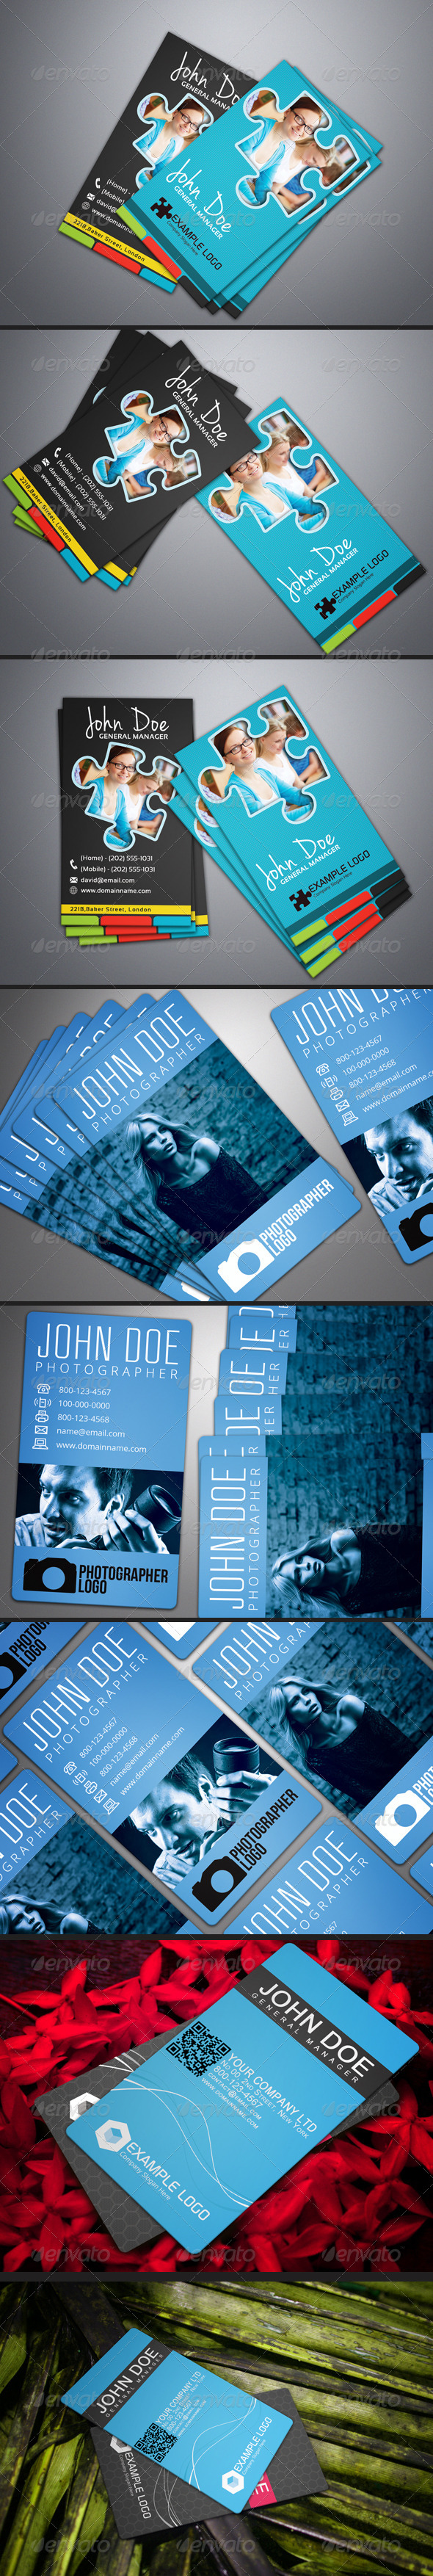 Photorealistic Business Card Mock-Up Bundle 2 - Business Cards Print